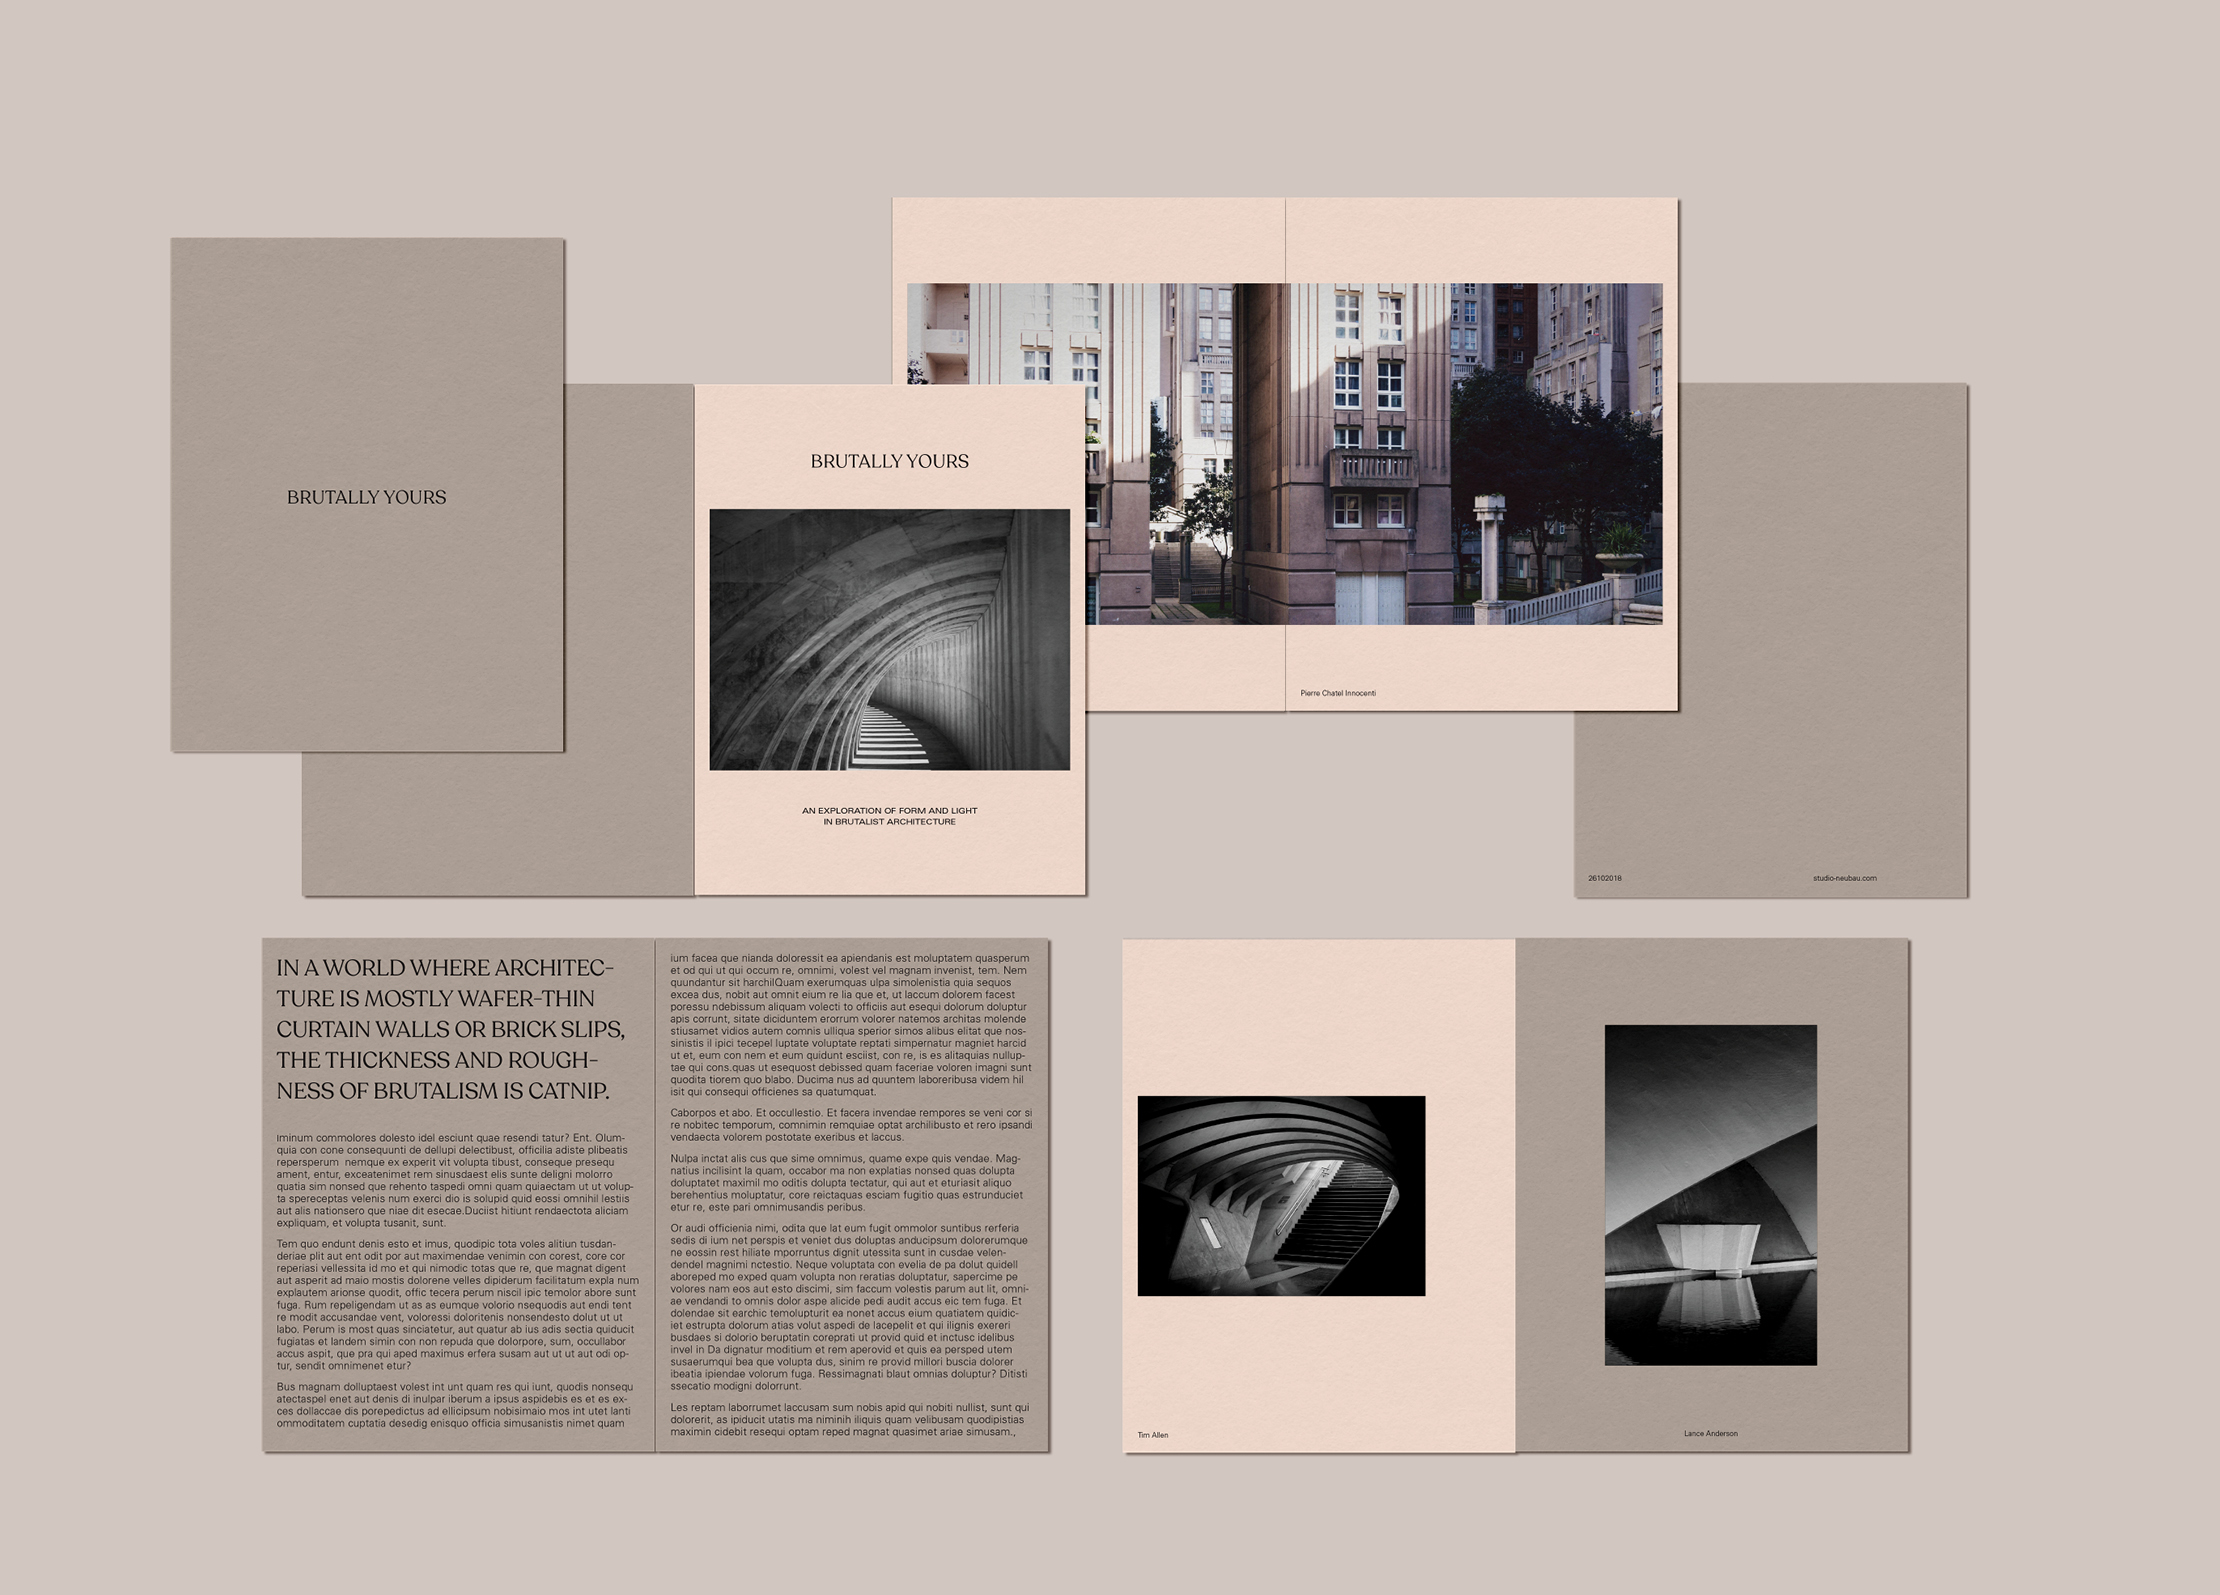 Concept design for book on brutalist architecture